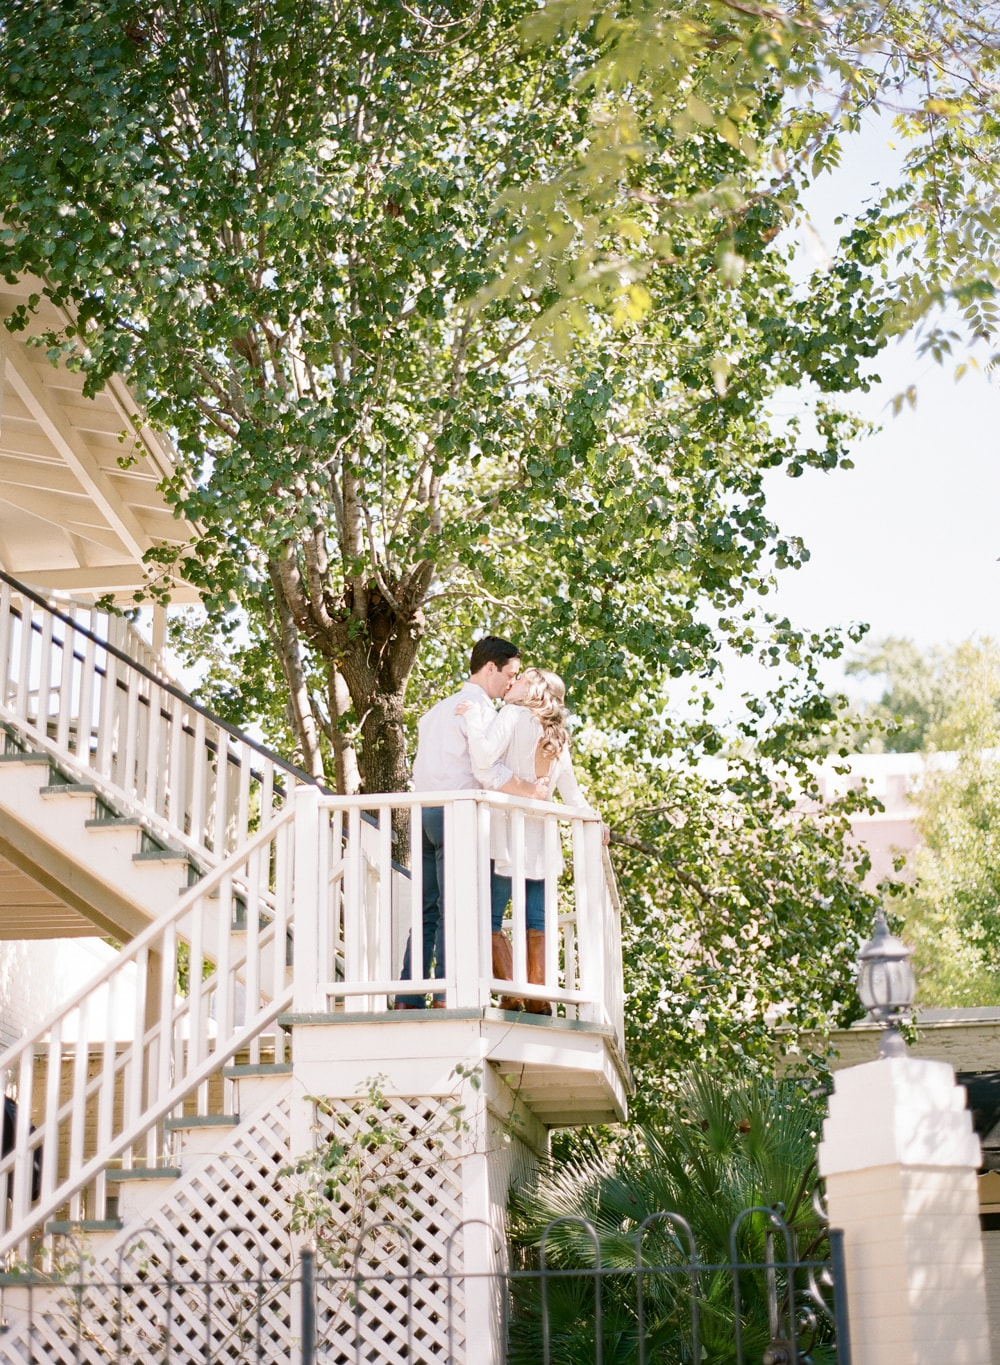 north-carolina-engagement-photography-21-min.jpg